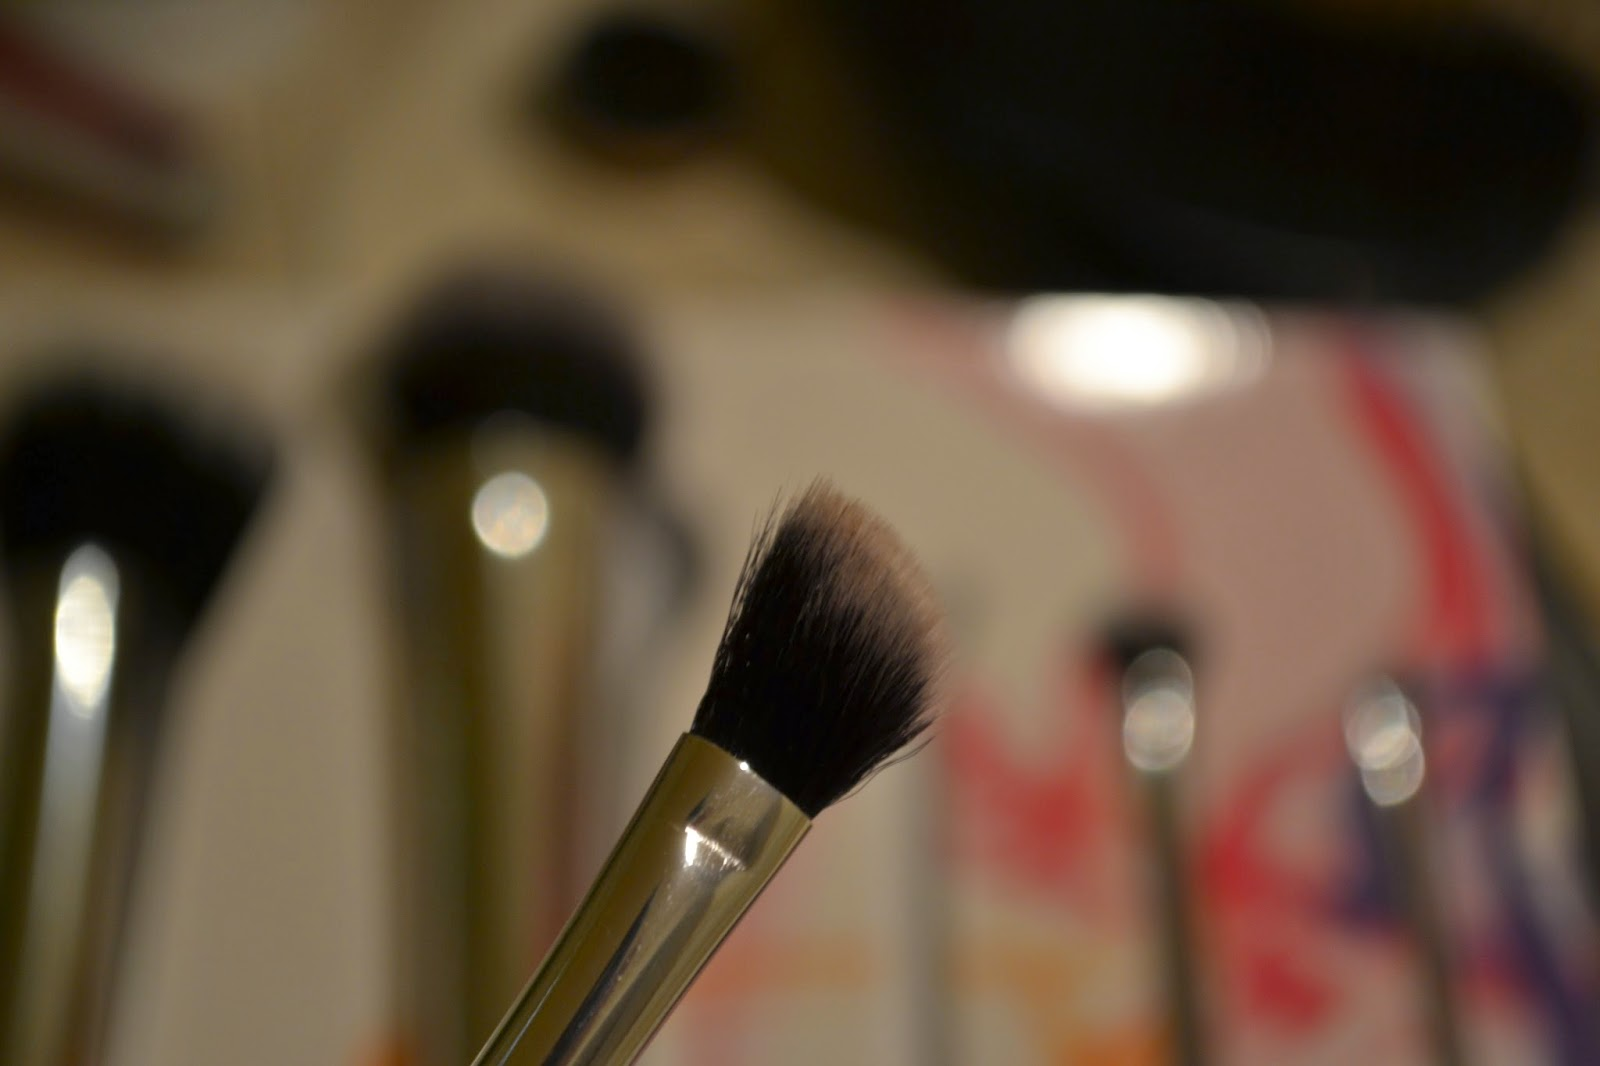 Real Techniques Nic's Picks Brush set - angled shadow brush